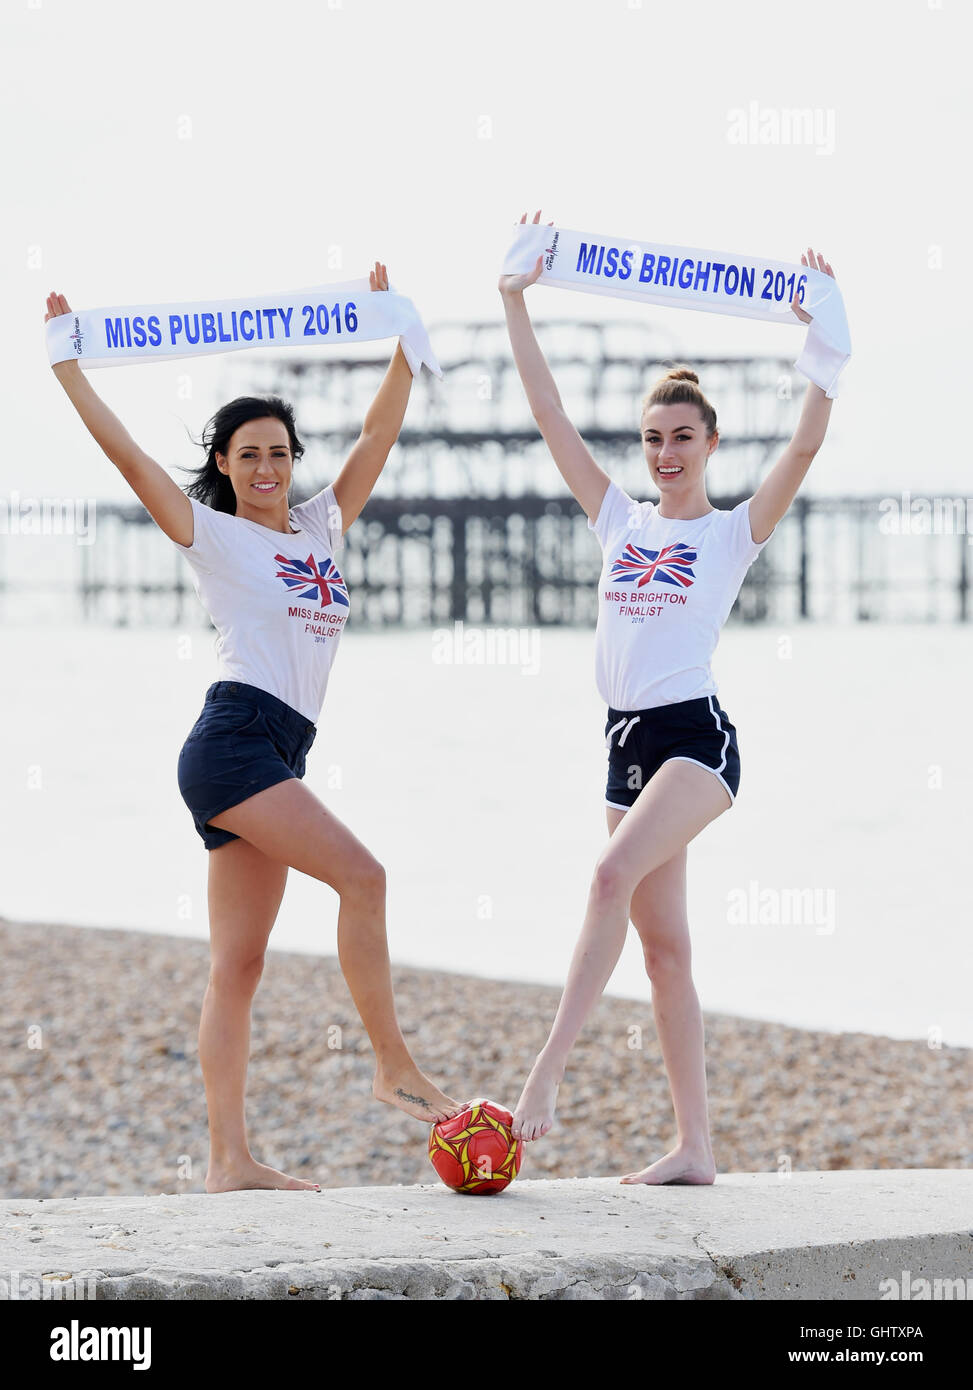 Brighton, UK. 11th August, 2016.  Miss Brighton 2016 Megan O'Hara (right) and Miss Publicity 2016 Lucie Richardson - Stock Image